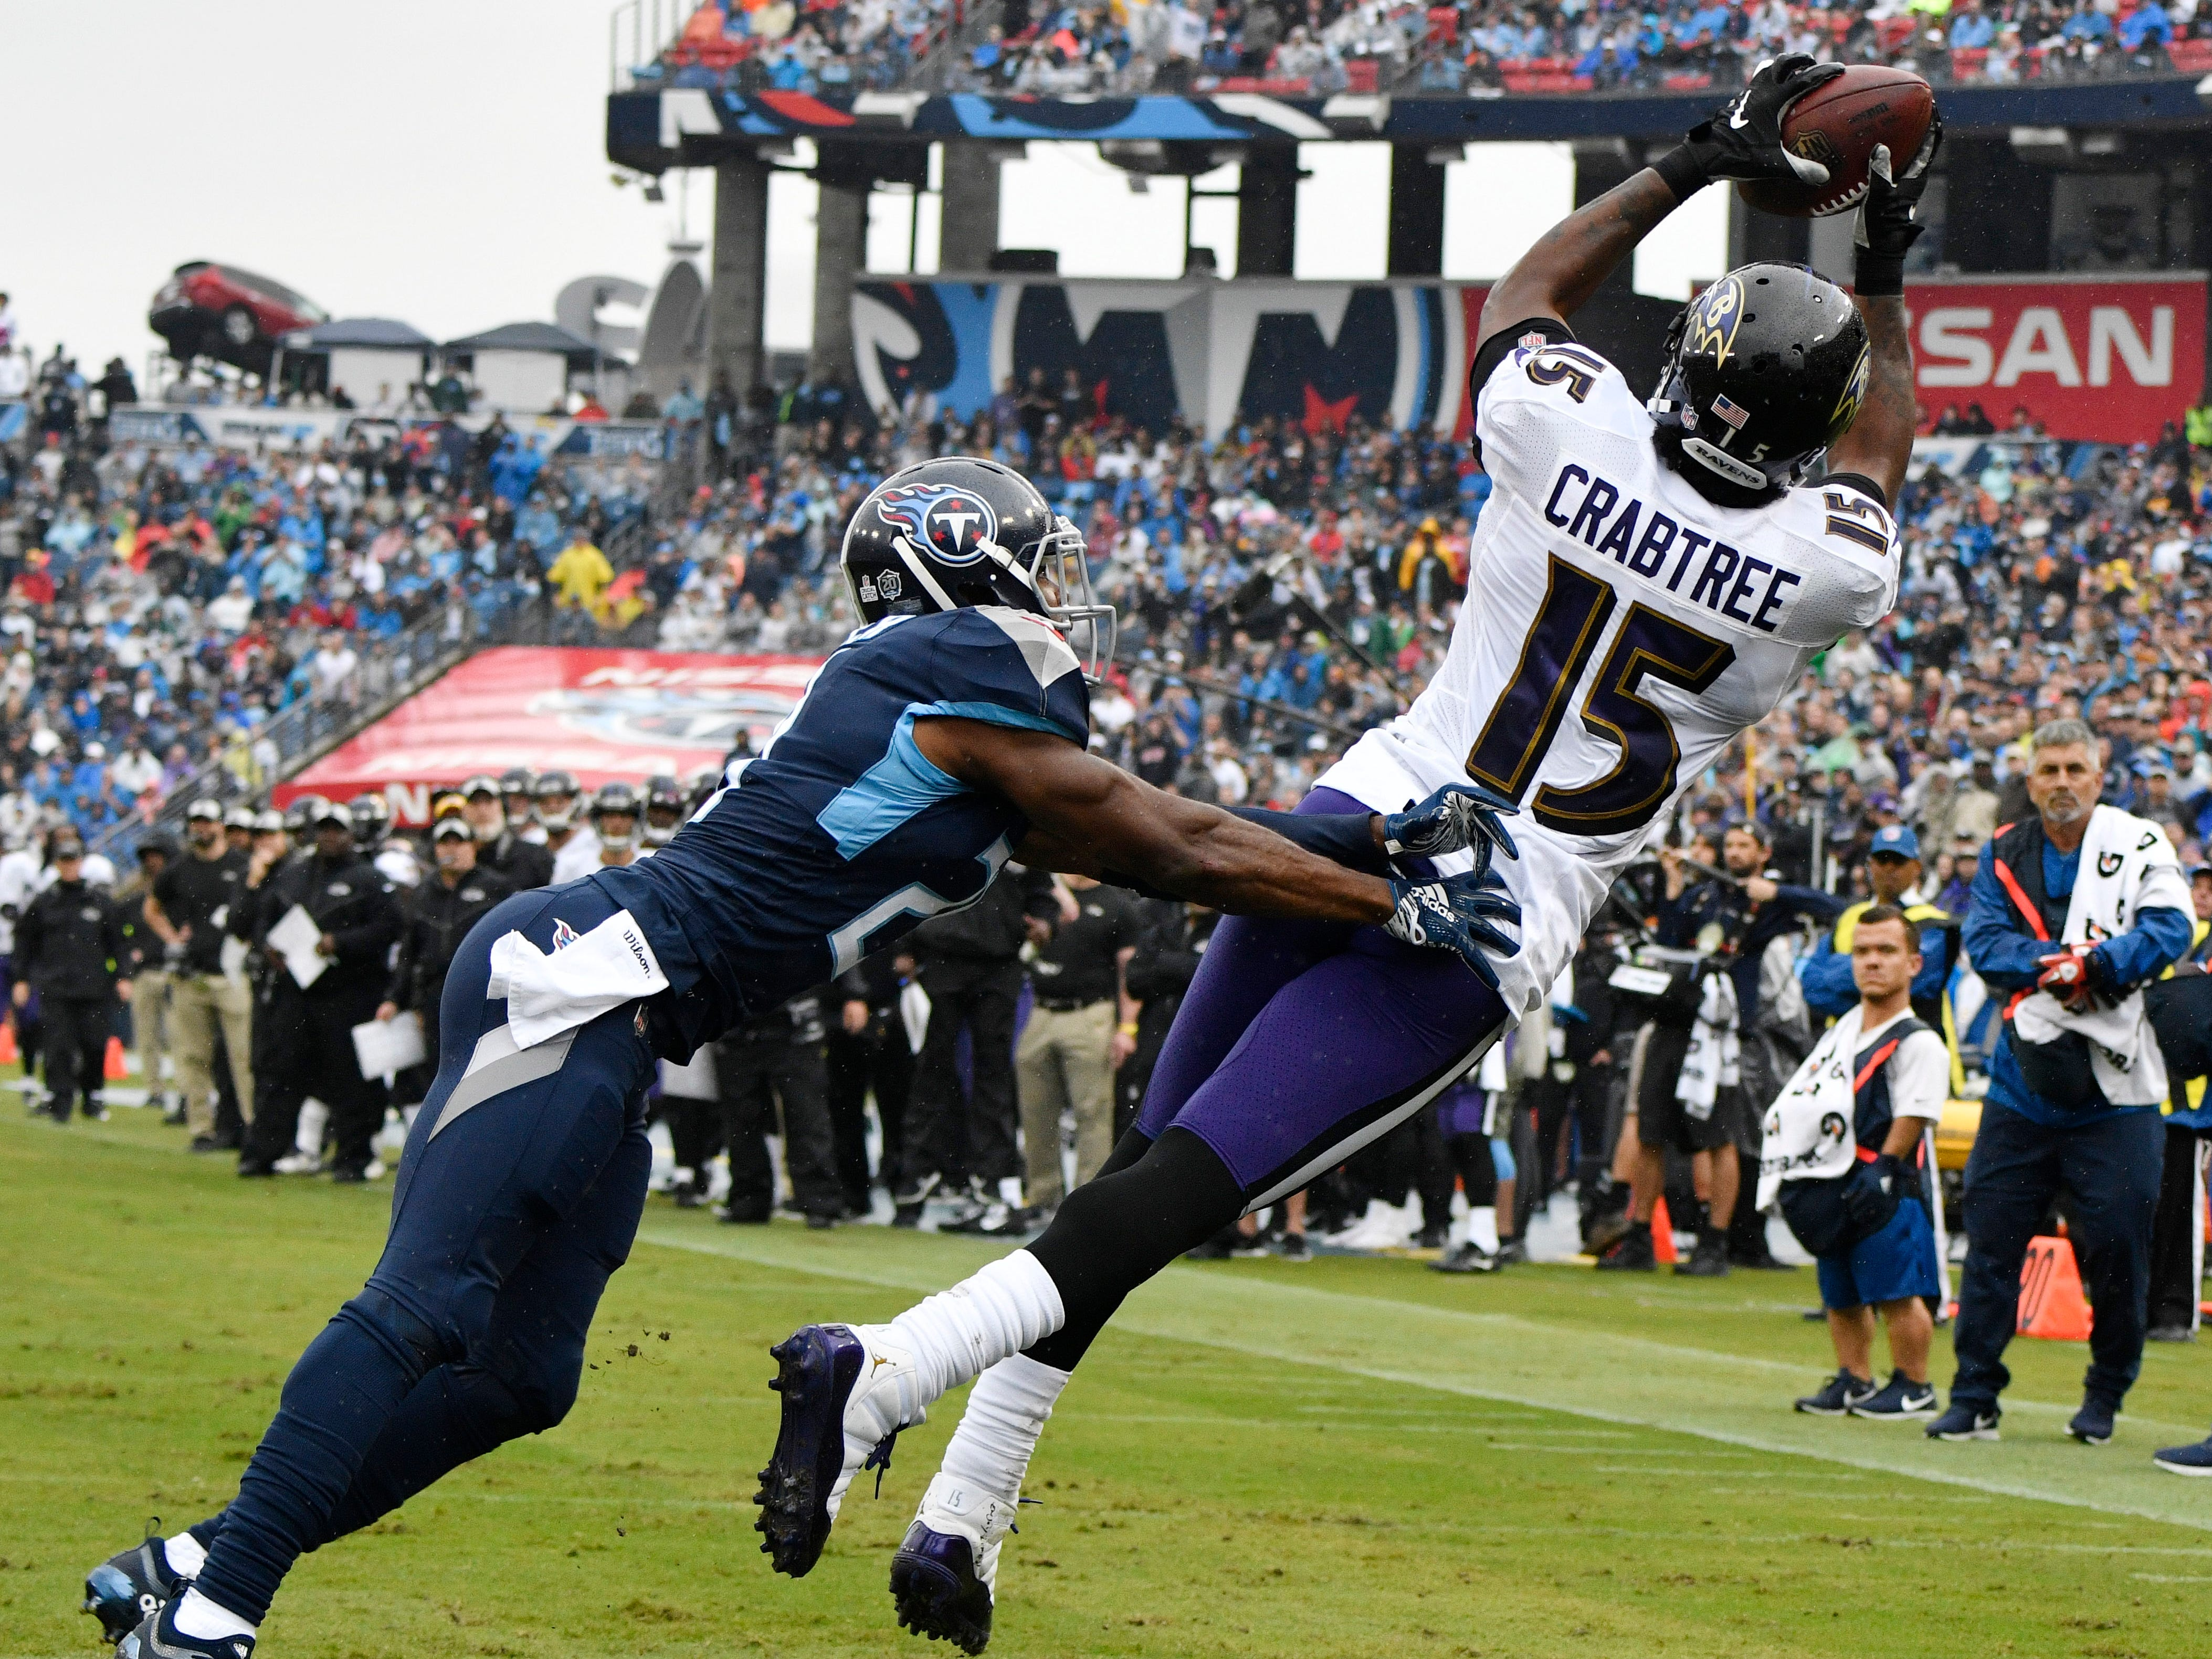 Ravens wide receiver Michael Crabtree (15) catches a touchdown pass defended by Titans cornerback Malcolm Butler (21) in the first quarter at Nissan Stadium Sunday, Oct. 14, 2018, in Nashville, Tenn.